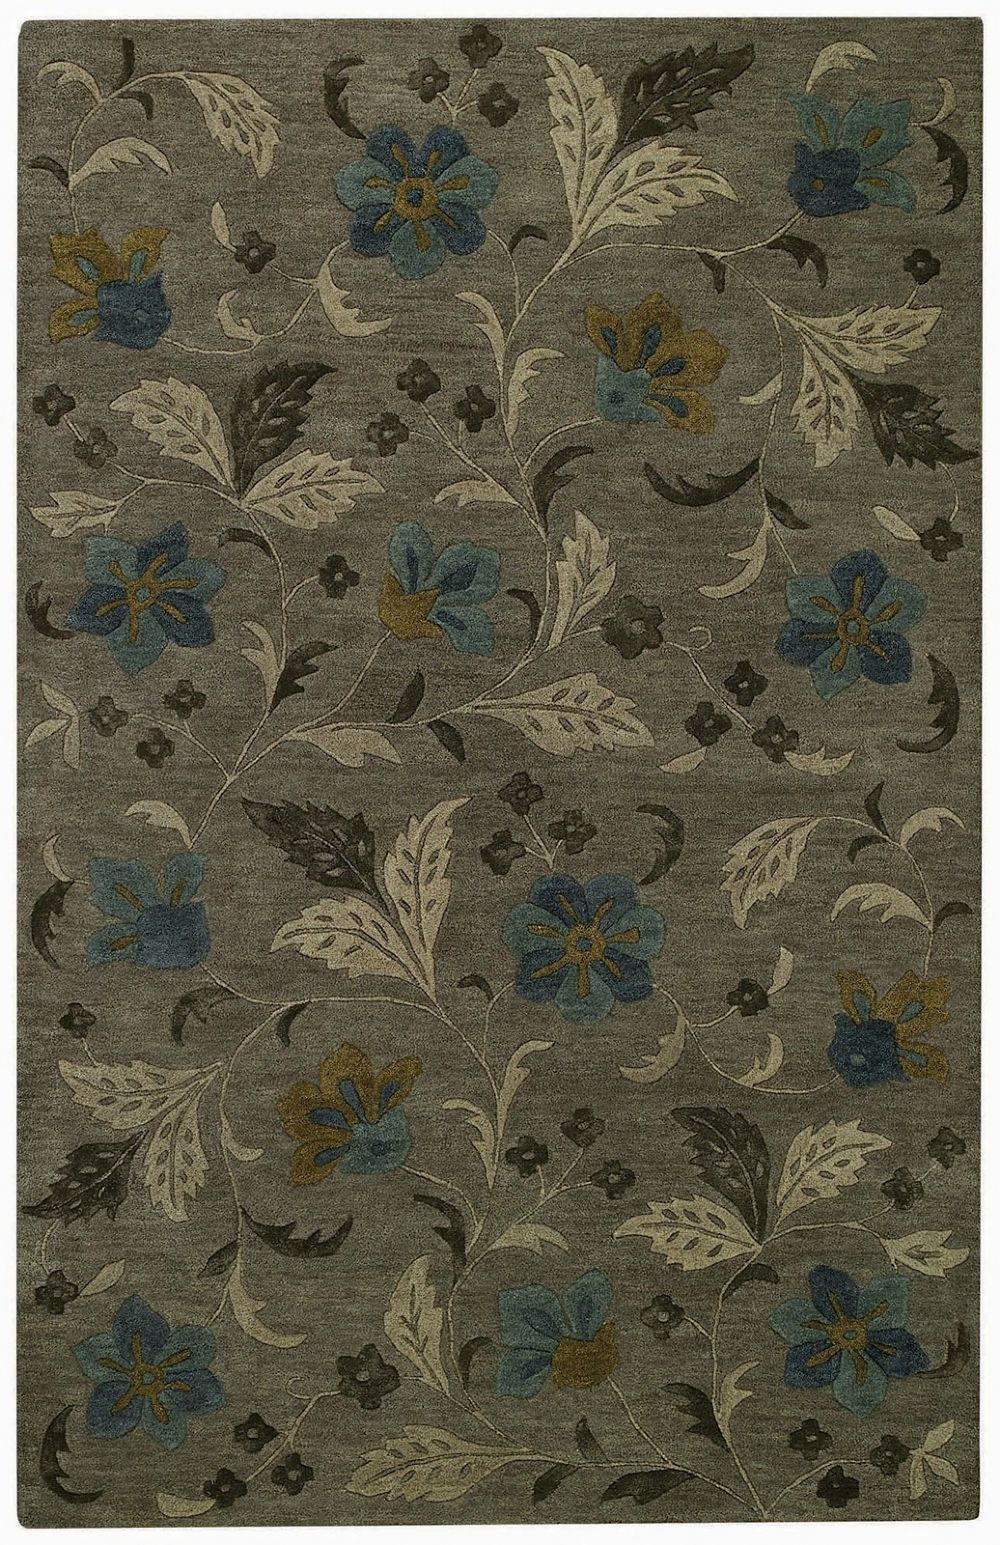 capel brock haven-bluebells contemporary area rug collection